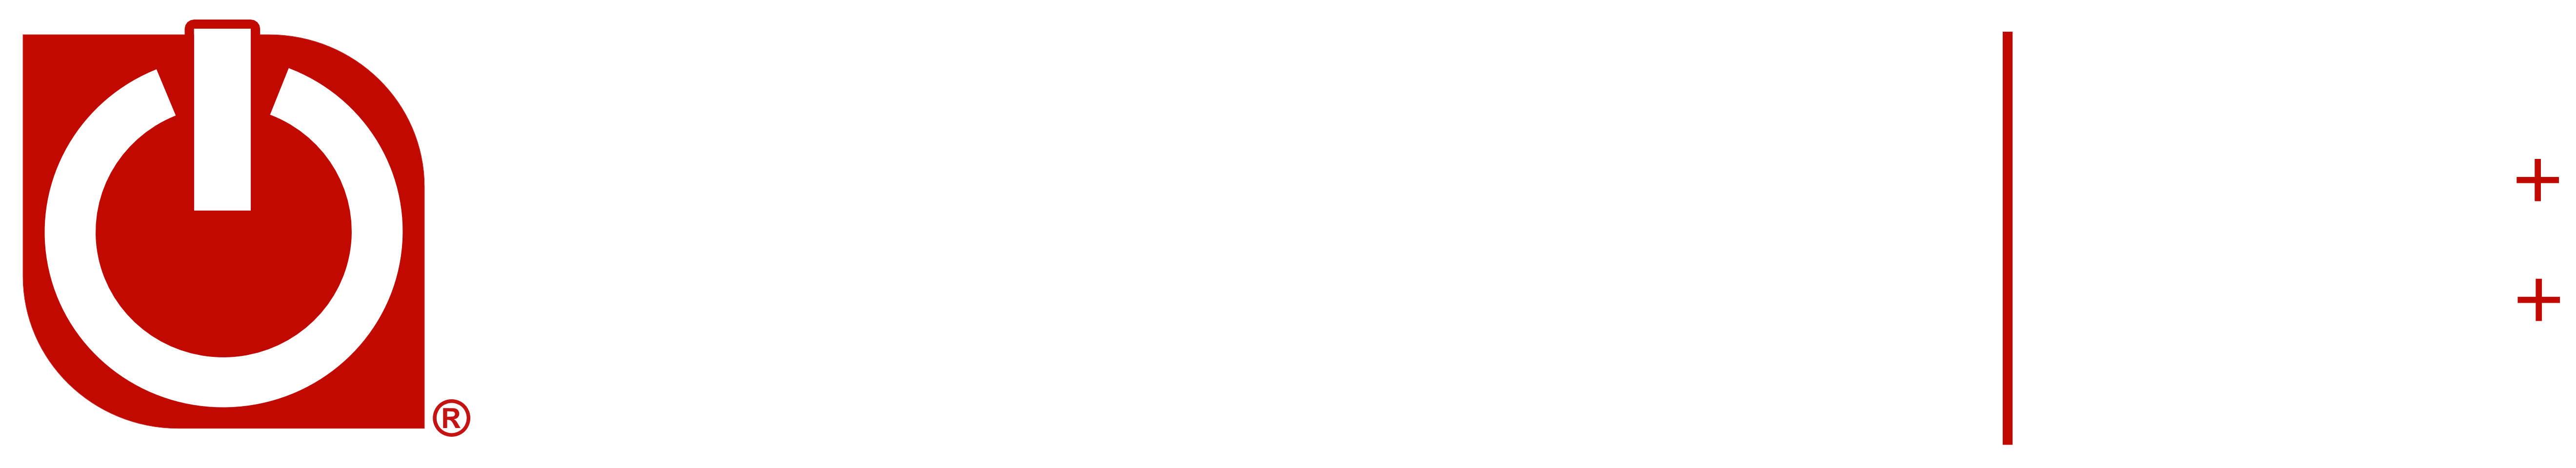 ONCALLERS® | Electronics Repairs, Home Improvements, IT Solutions